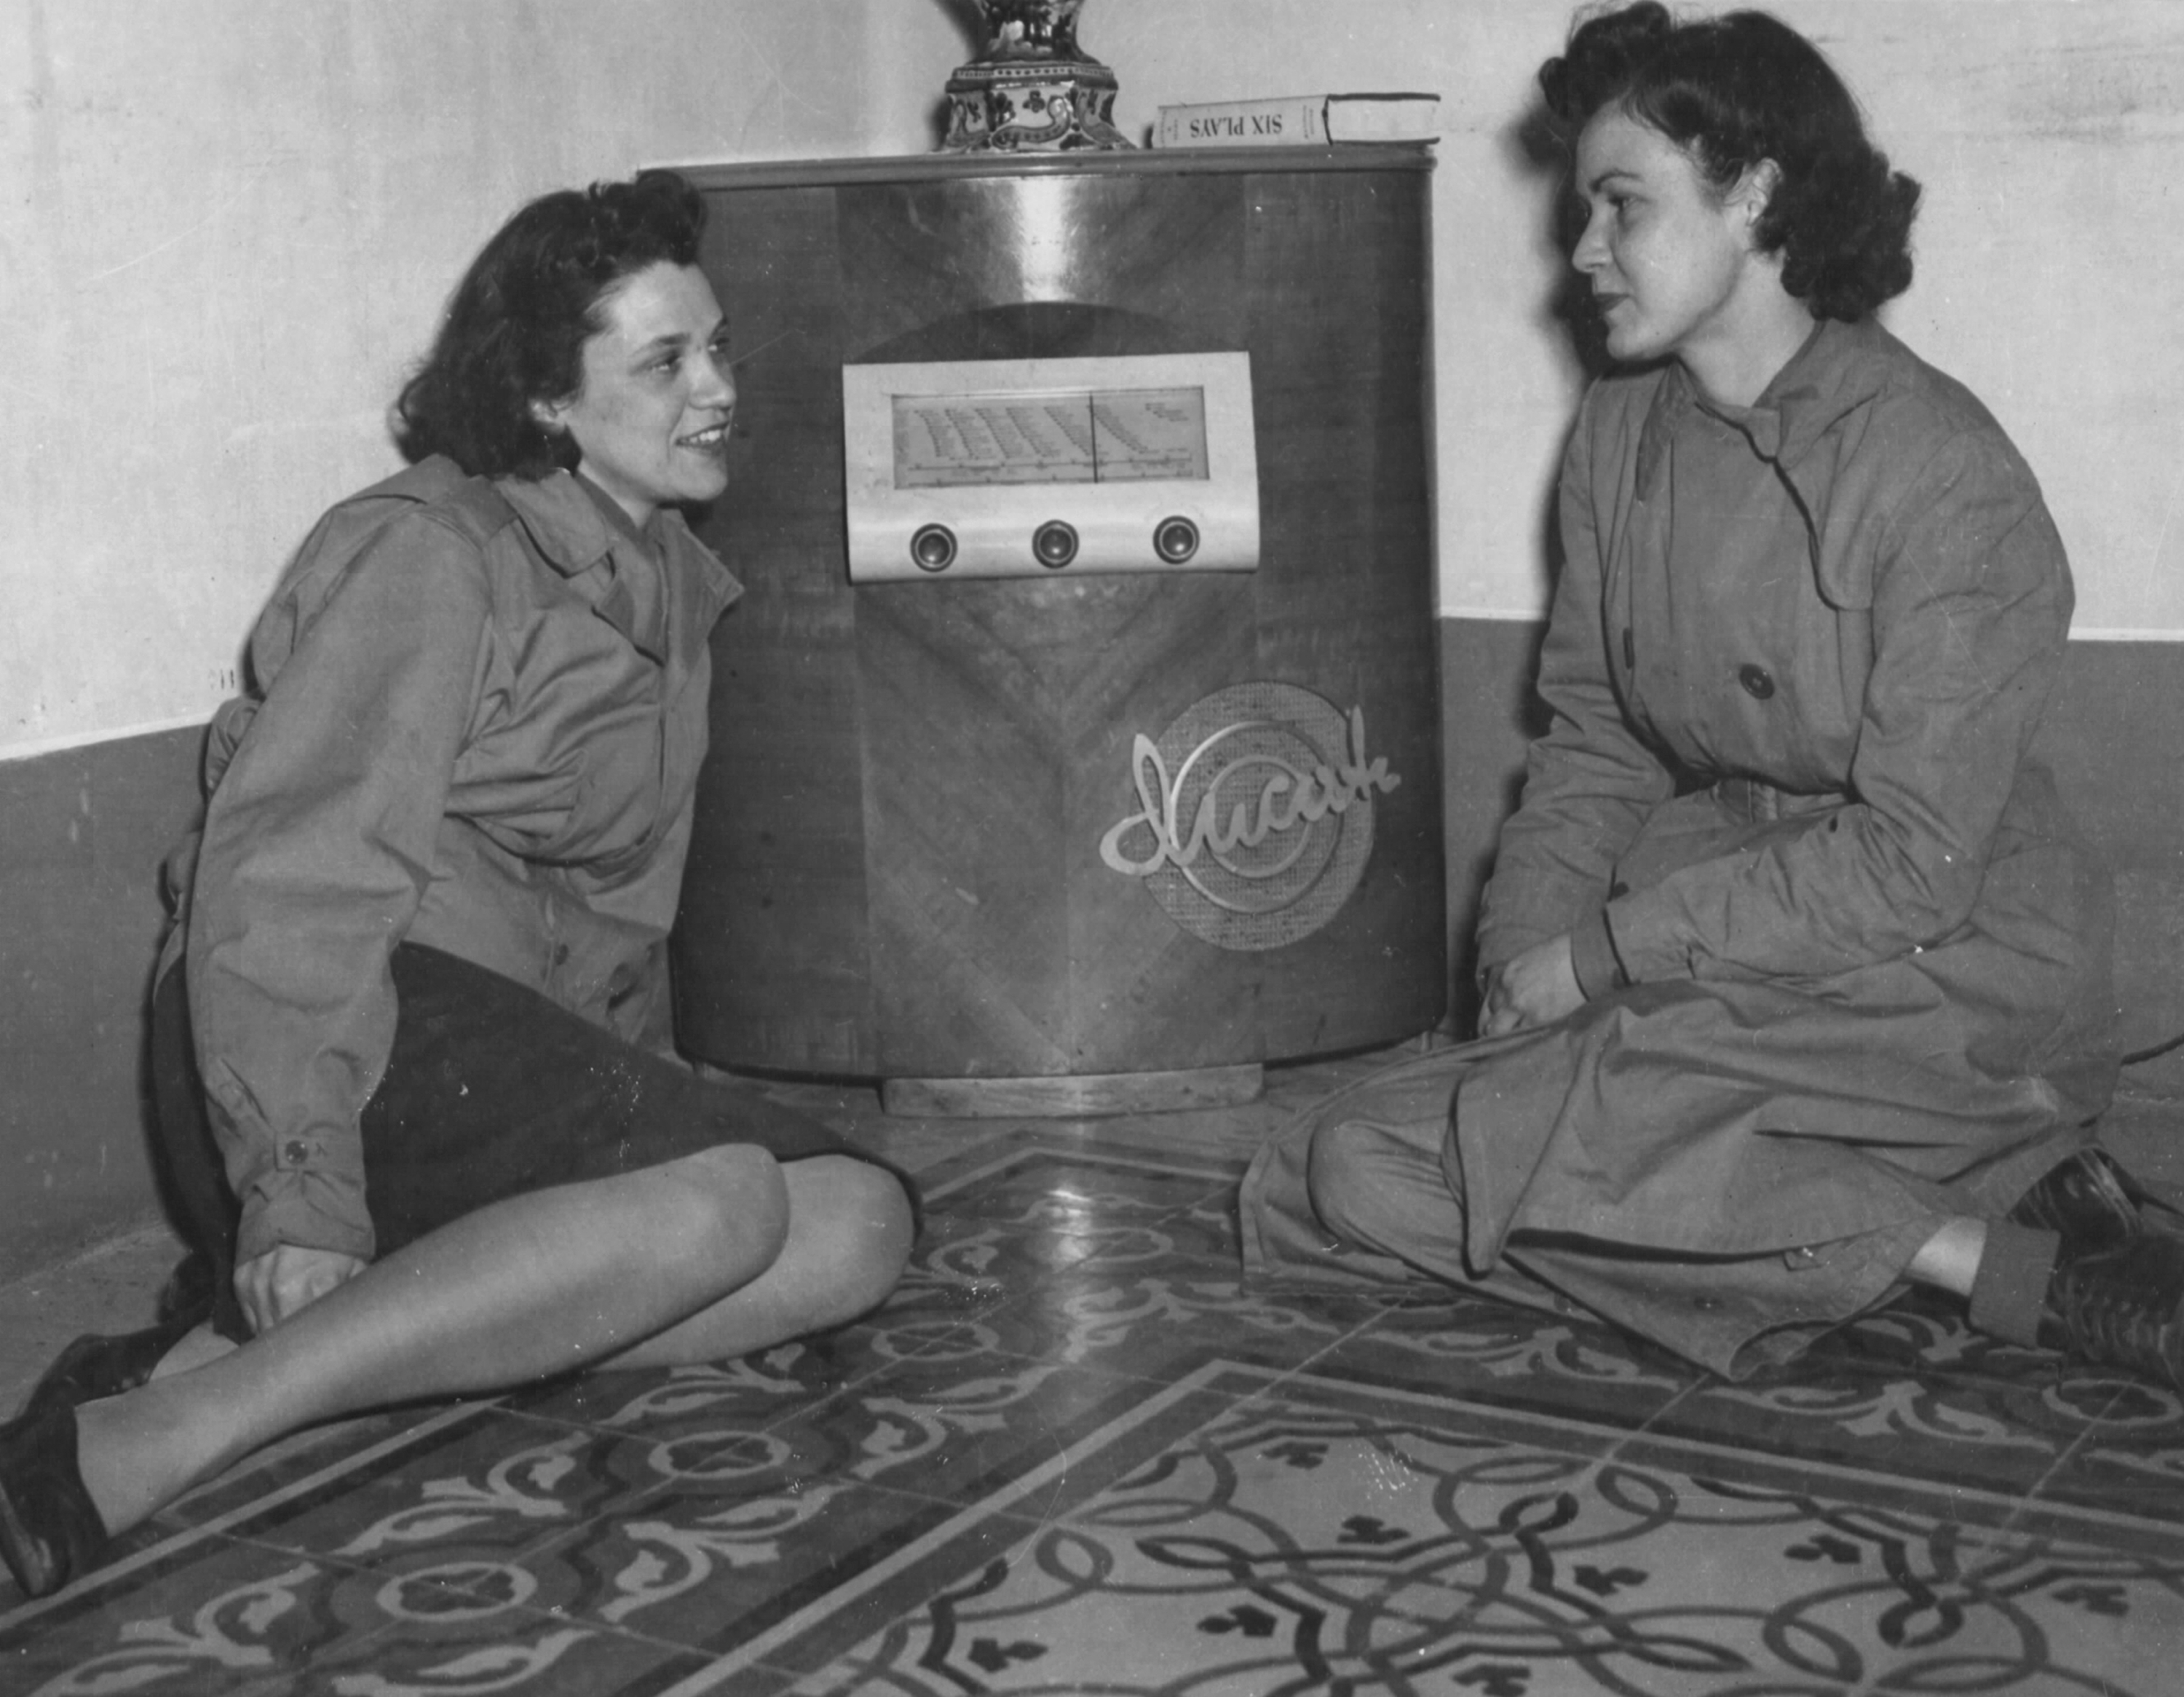 WACs in Italy Listen to News from Home on Radio